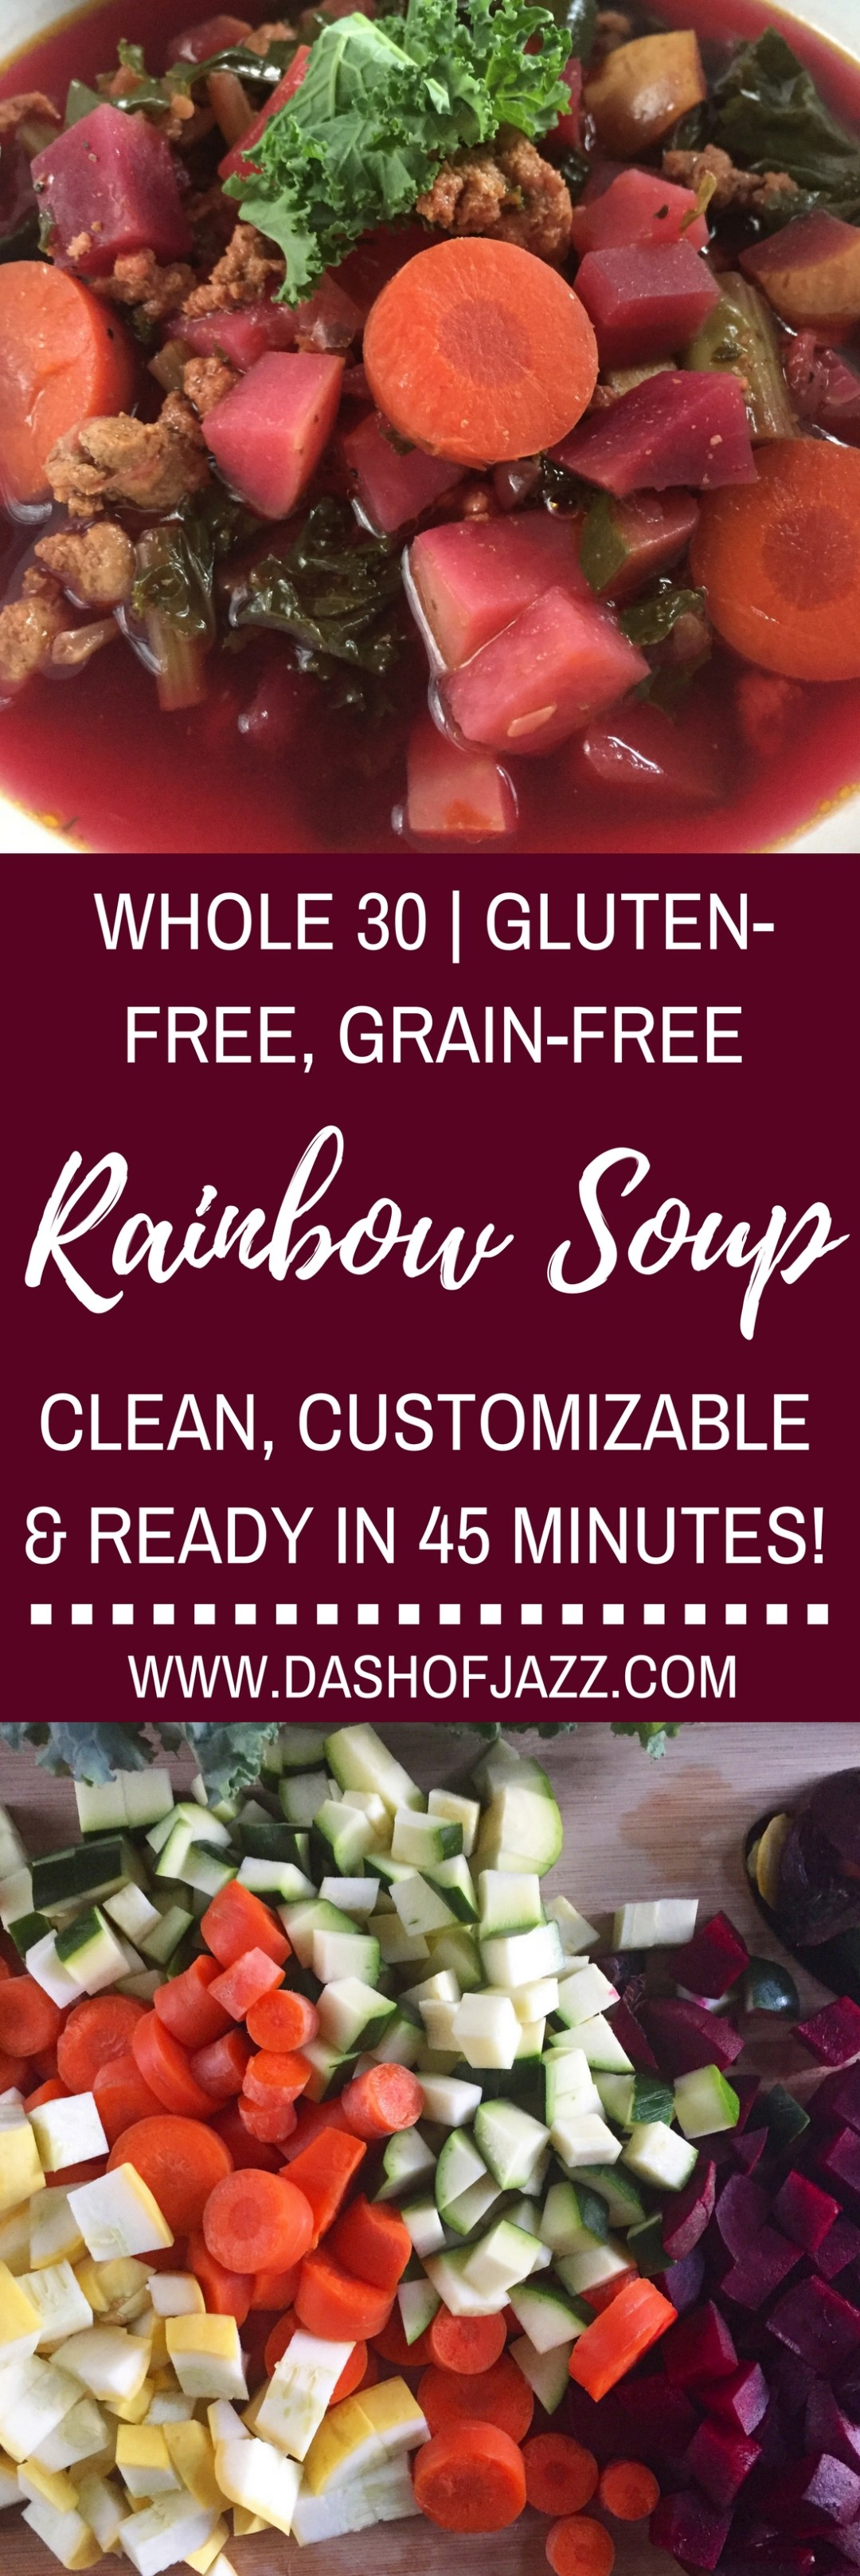 Easy Rainbow Detox Soup + Gratefulness